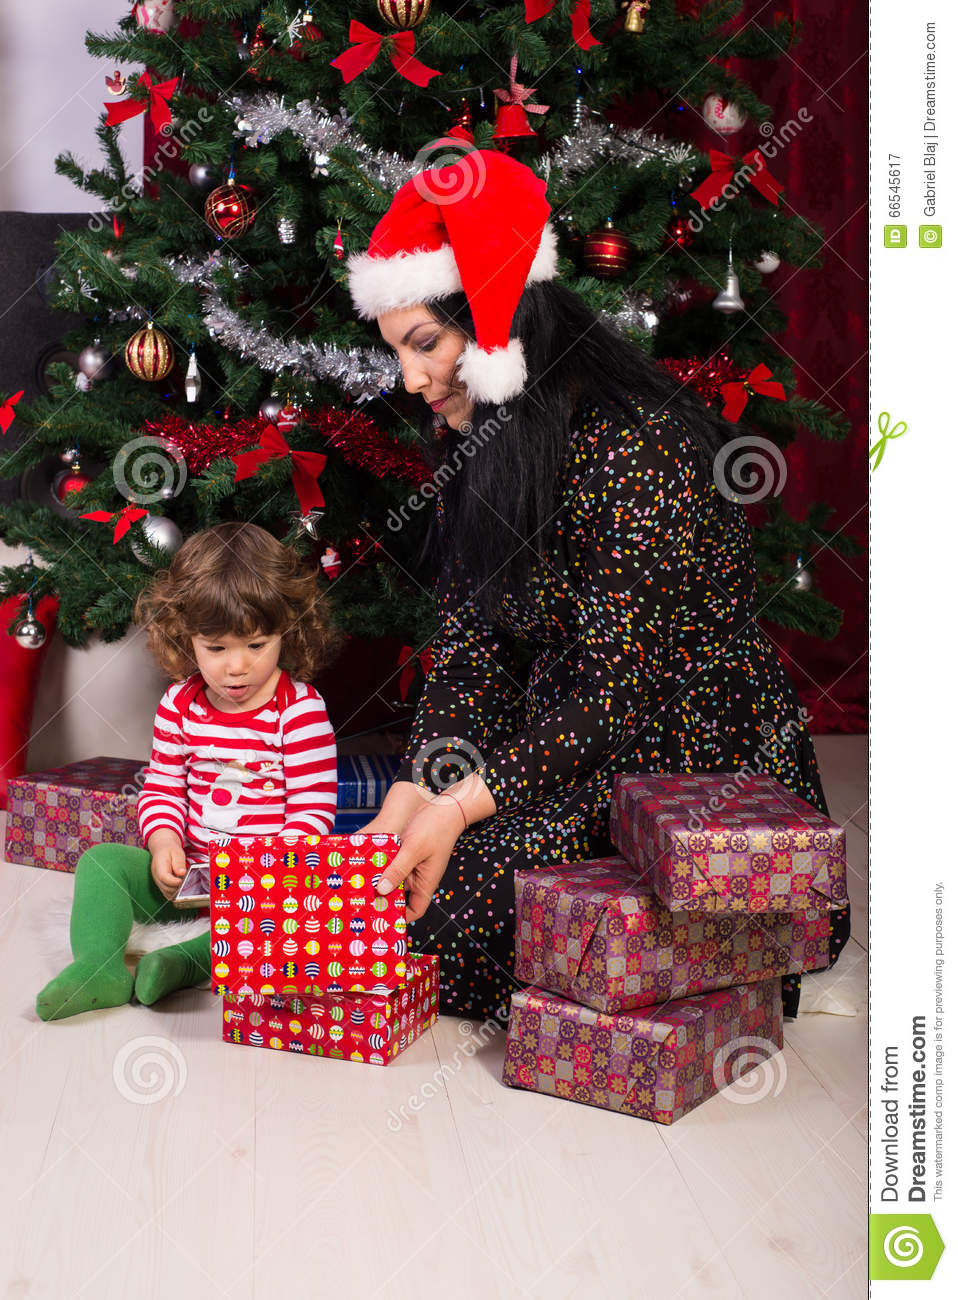 Mom And Toddler Son Opening Christmas Gifts Stock Image - Image of ...